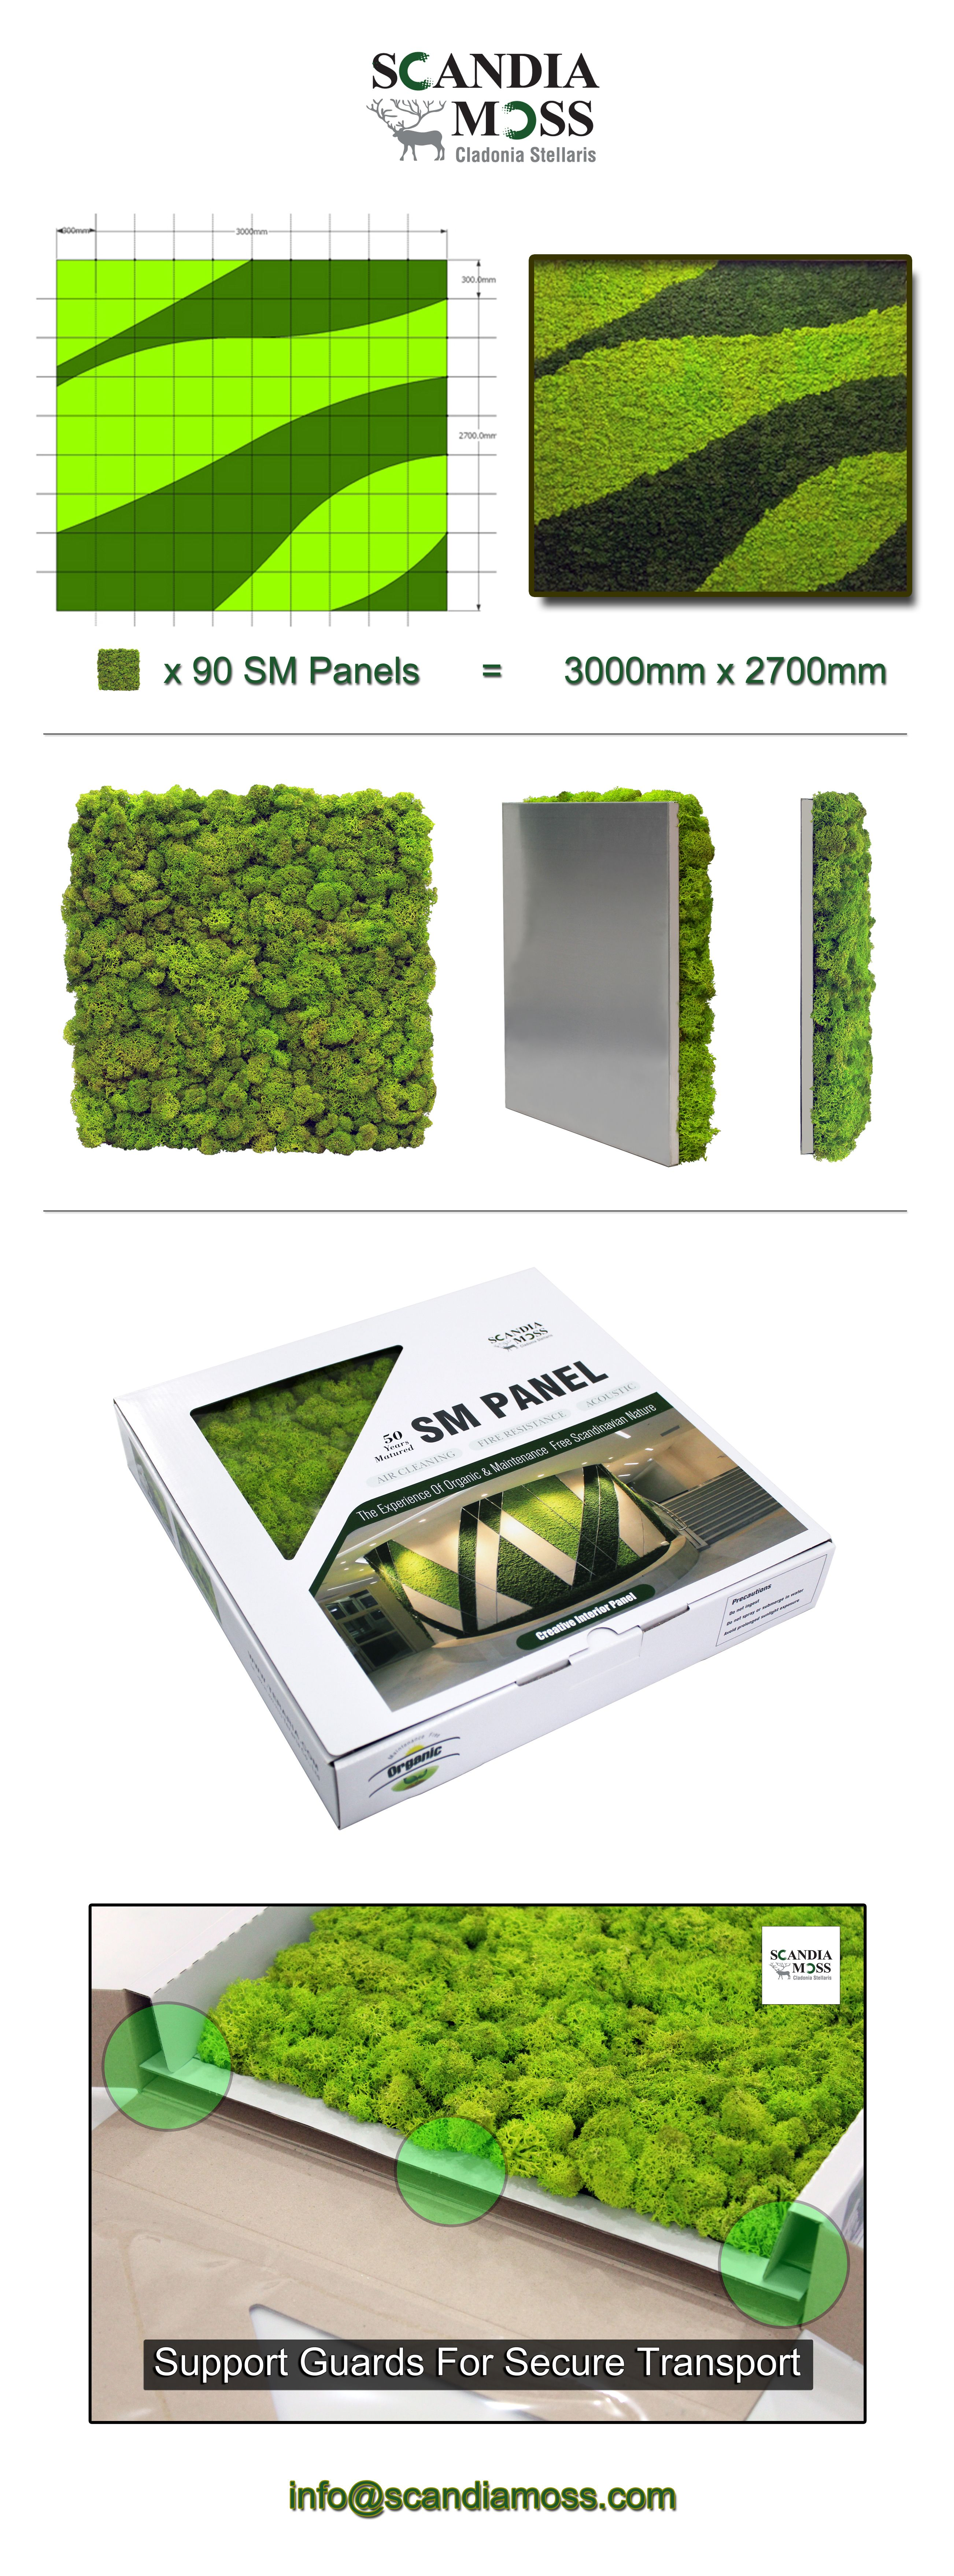 Want to go big with your moss how about your own custom design